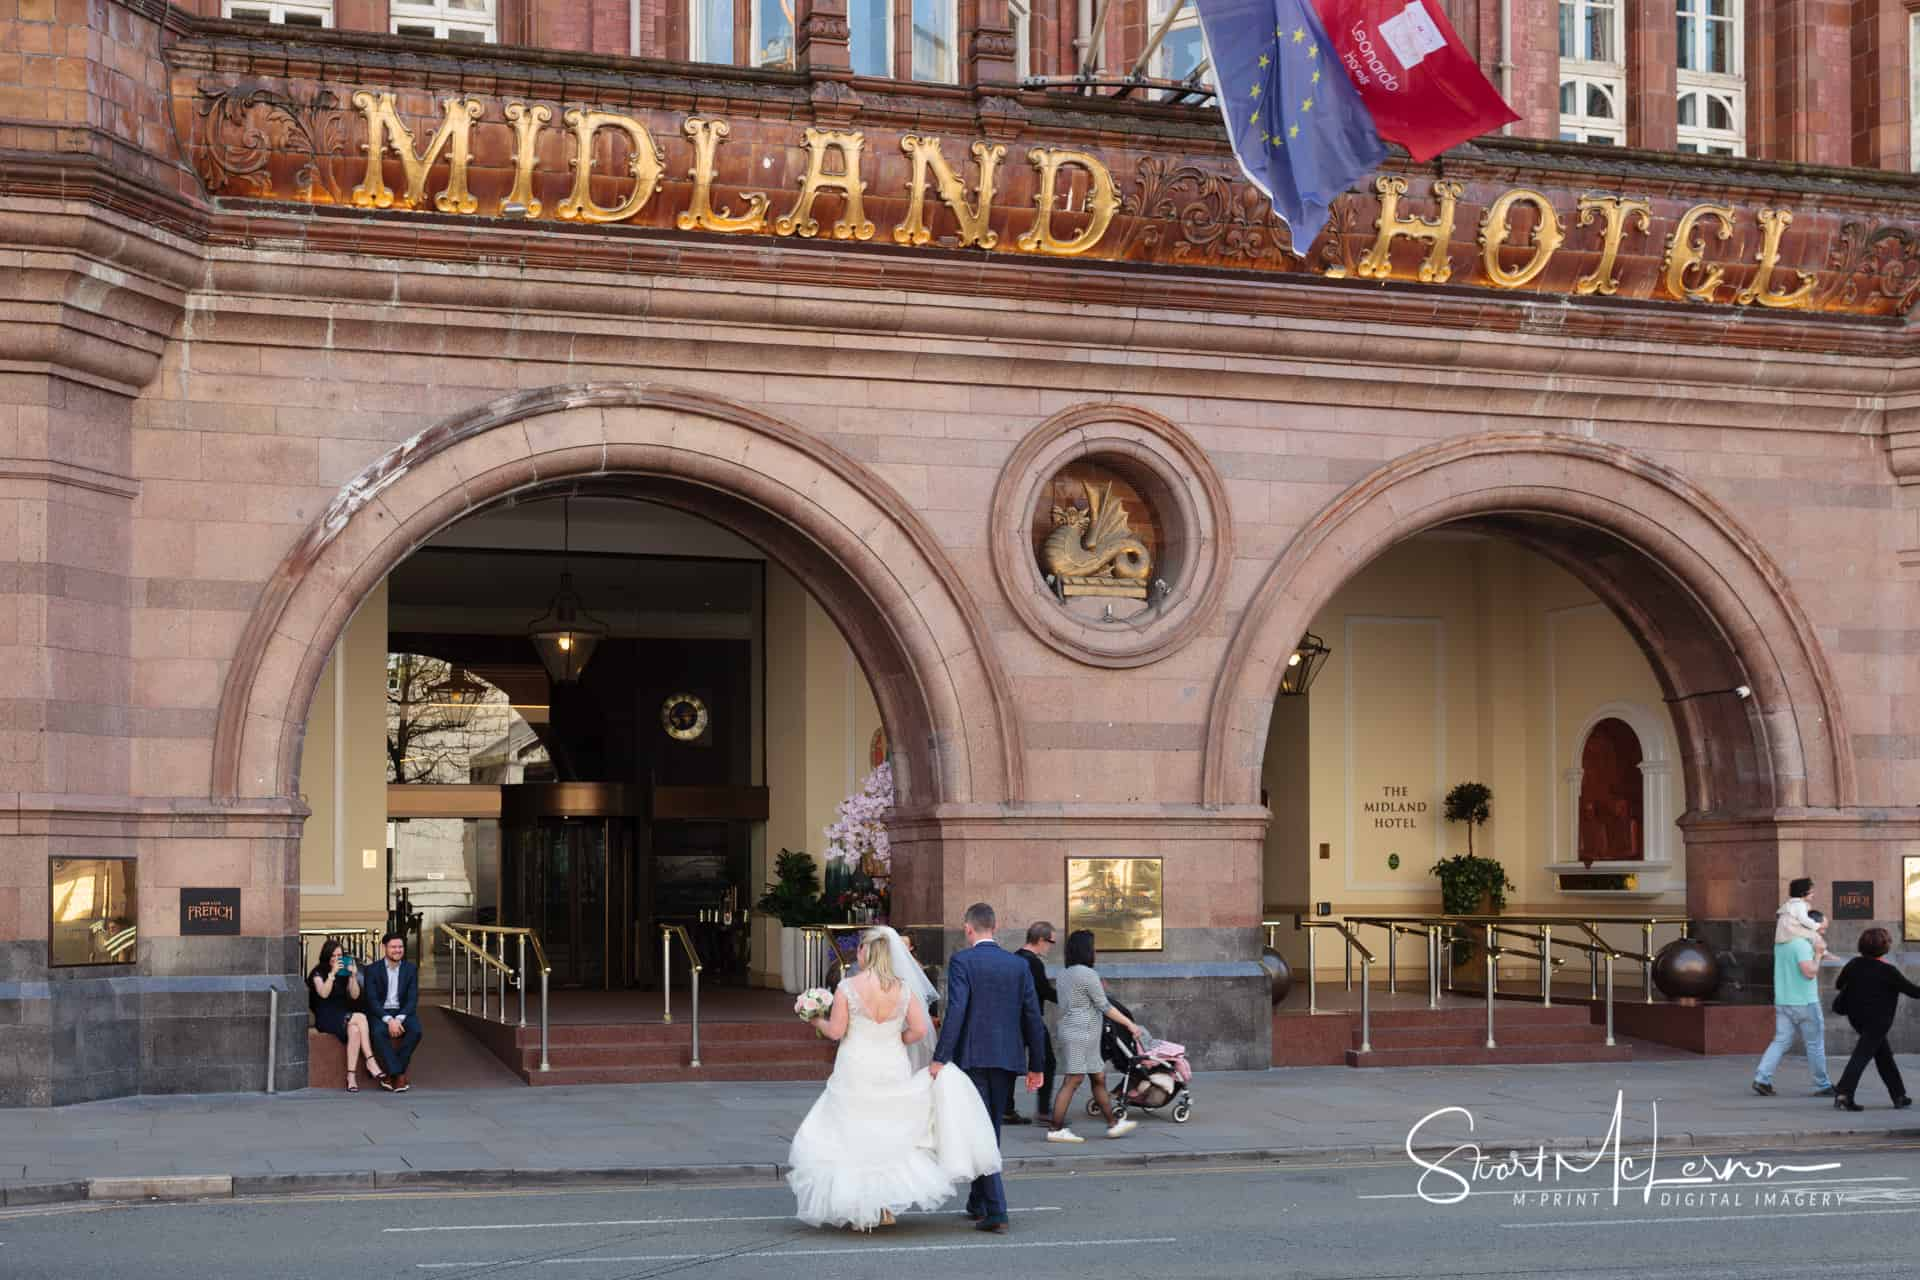 Midland Hotel Manchester Wedding Photography by Stuart McLernon | M-PRINT Digital Imagery